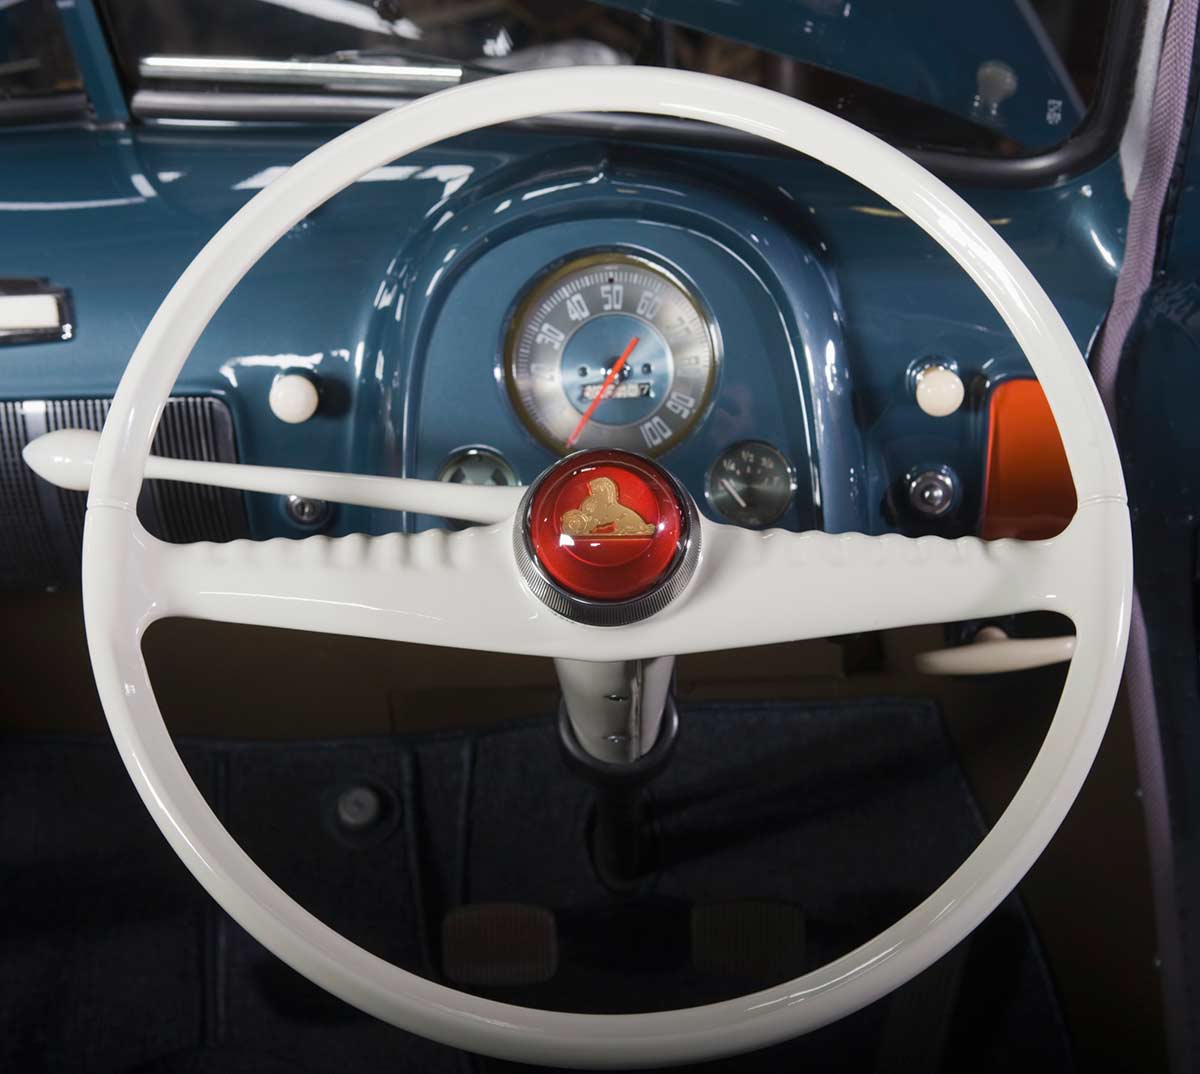 Steering wheel and dashboard of a Holden automobile. - click to view larger image